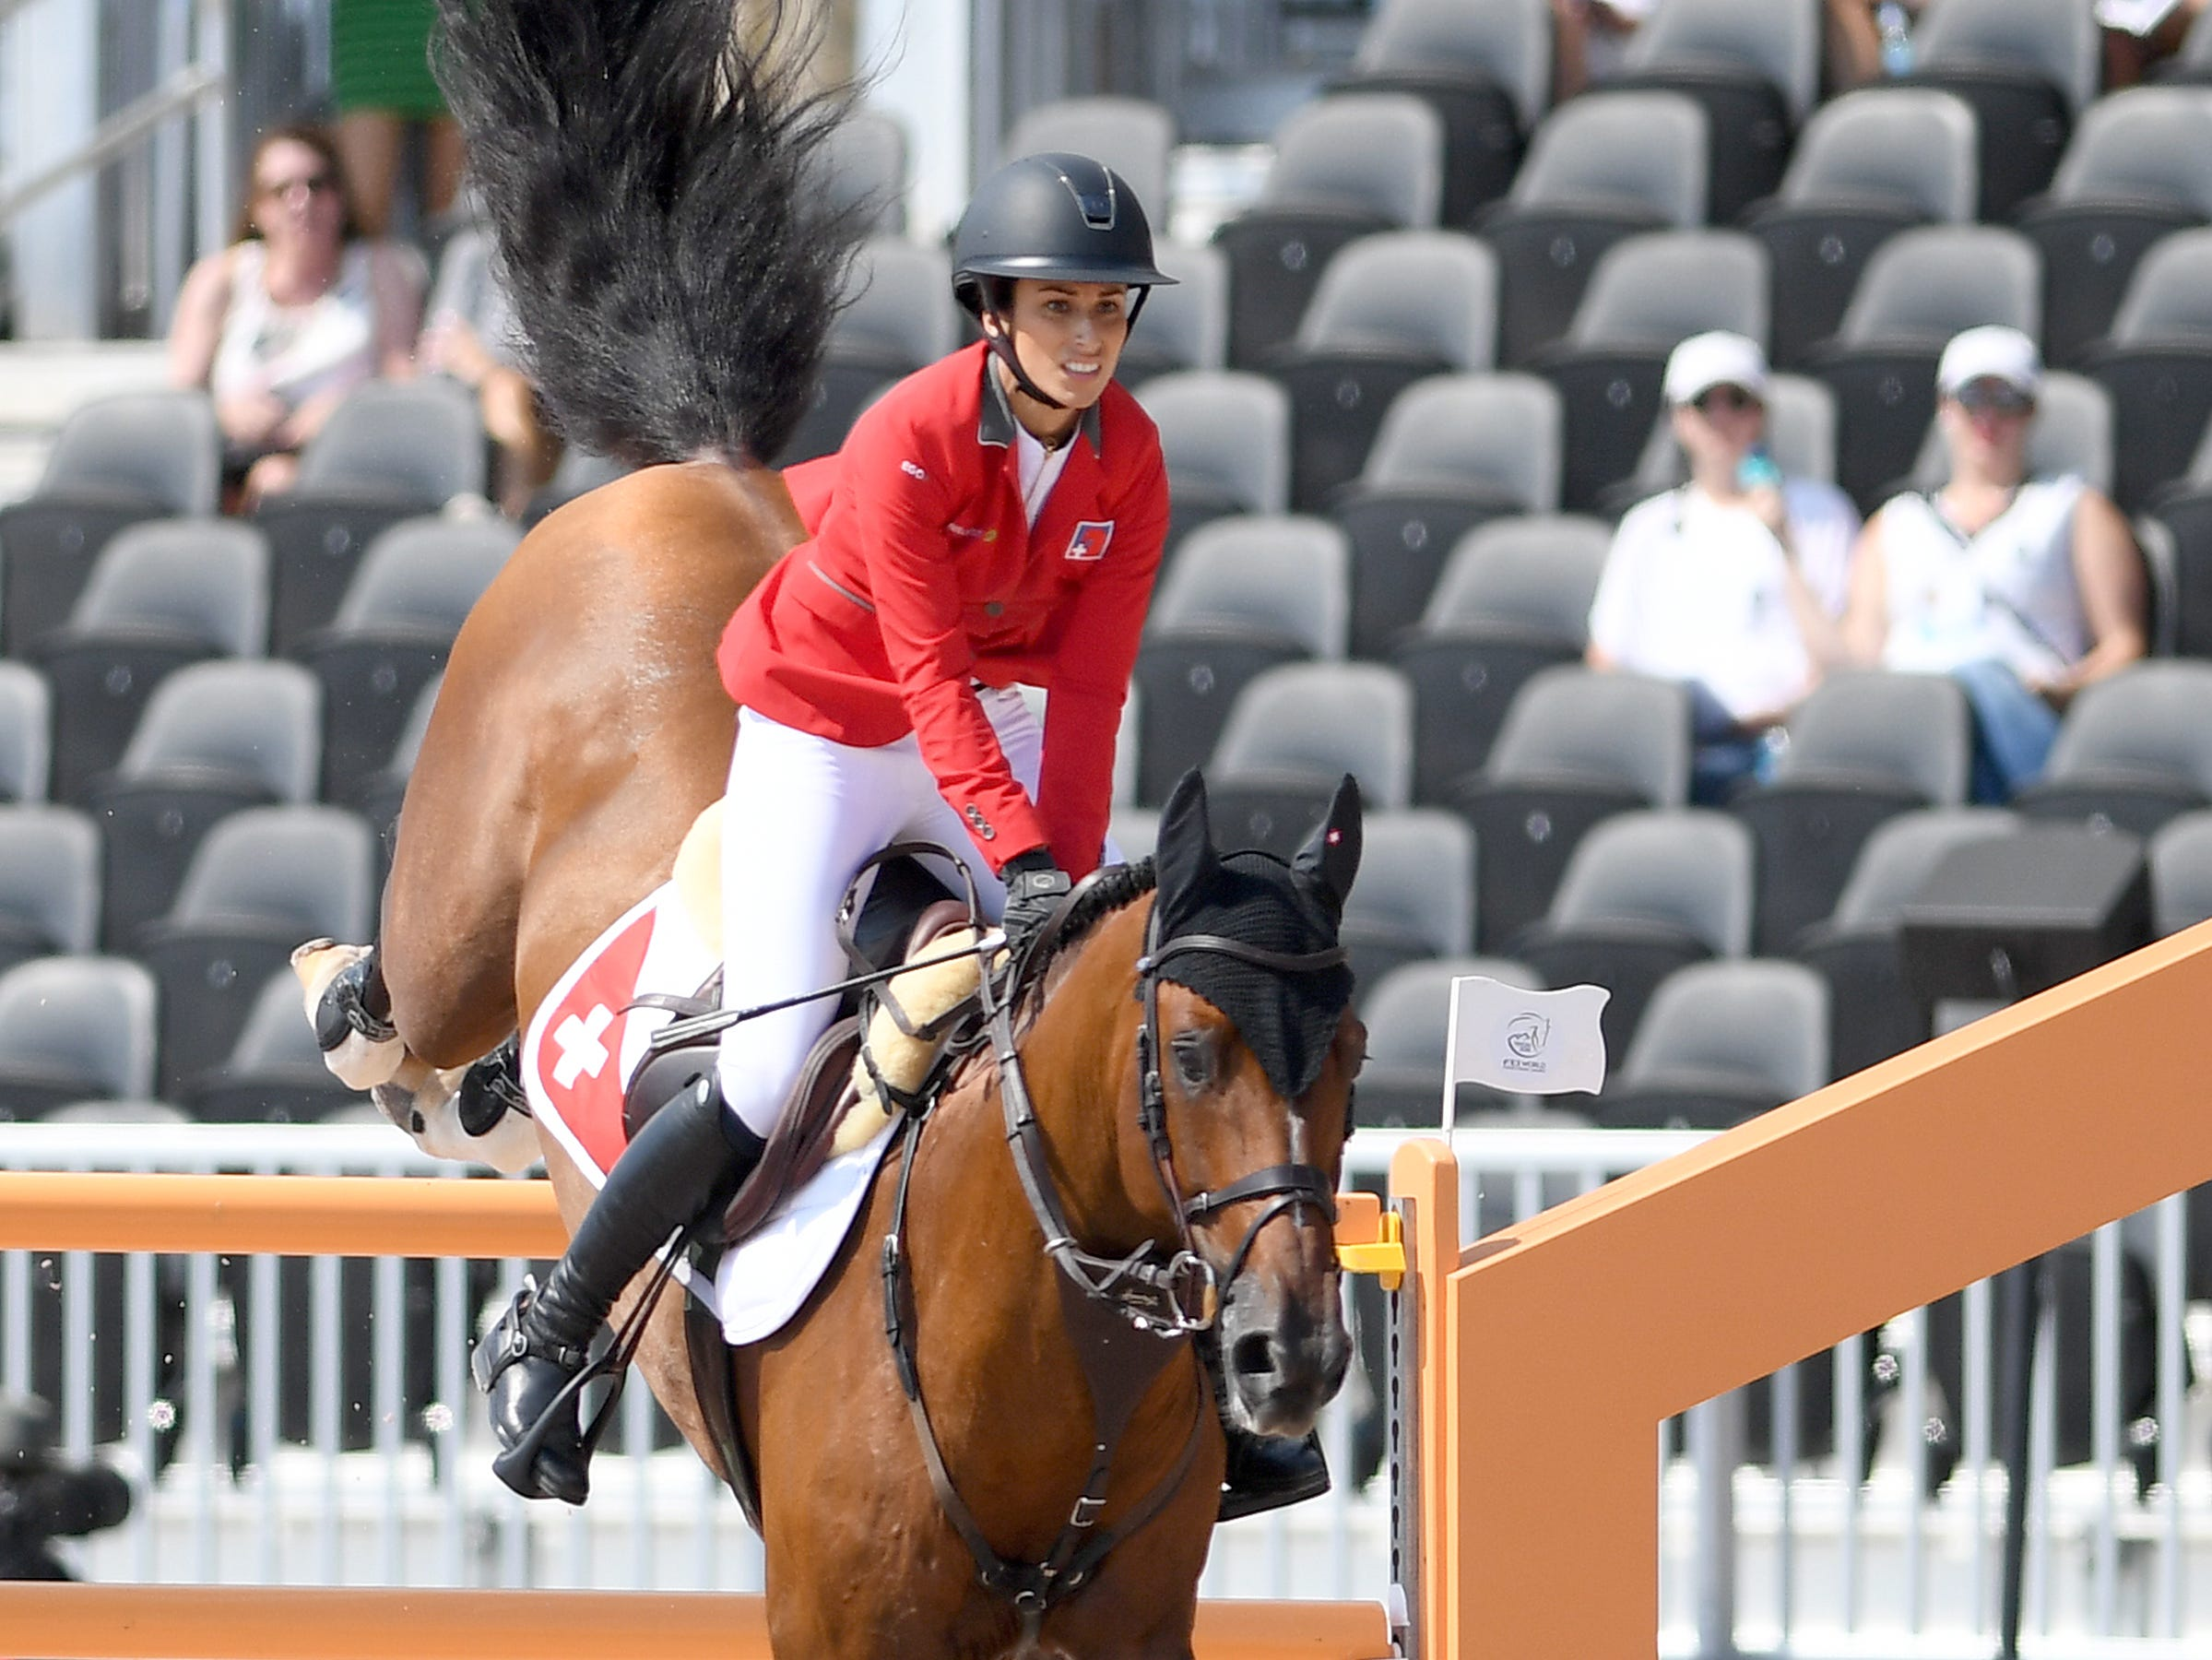 Switzerland's Janika Sprunger, on Bacardi VDL, competes in the team jumping competition of the FEI World Equestrian Games at the Tryon International Equestrian Center on Sept. 20, 2018.